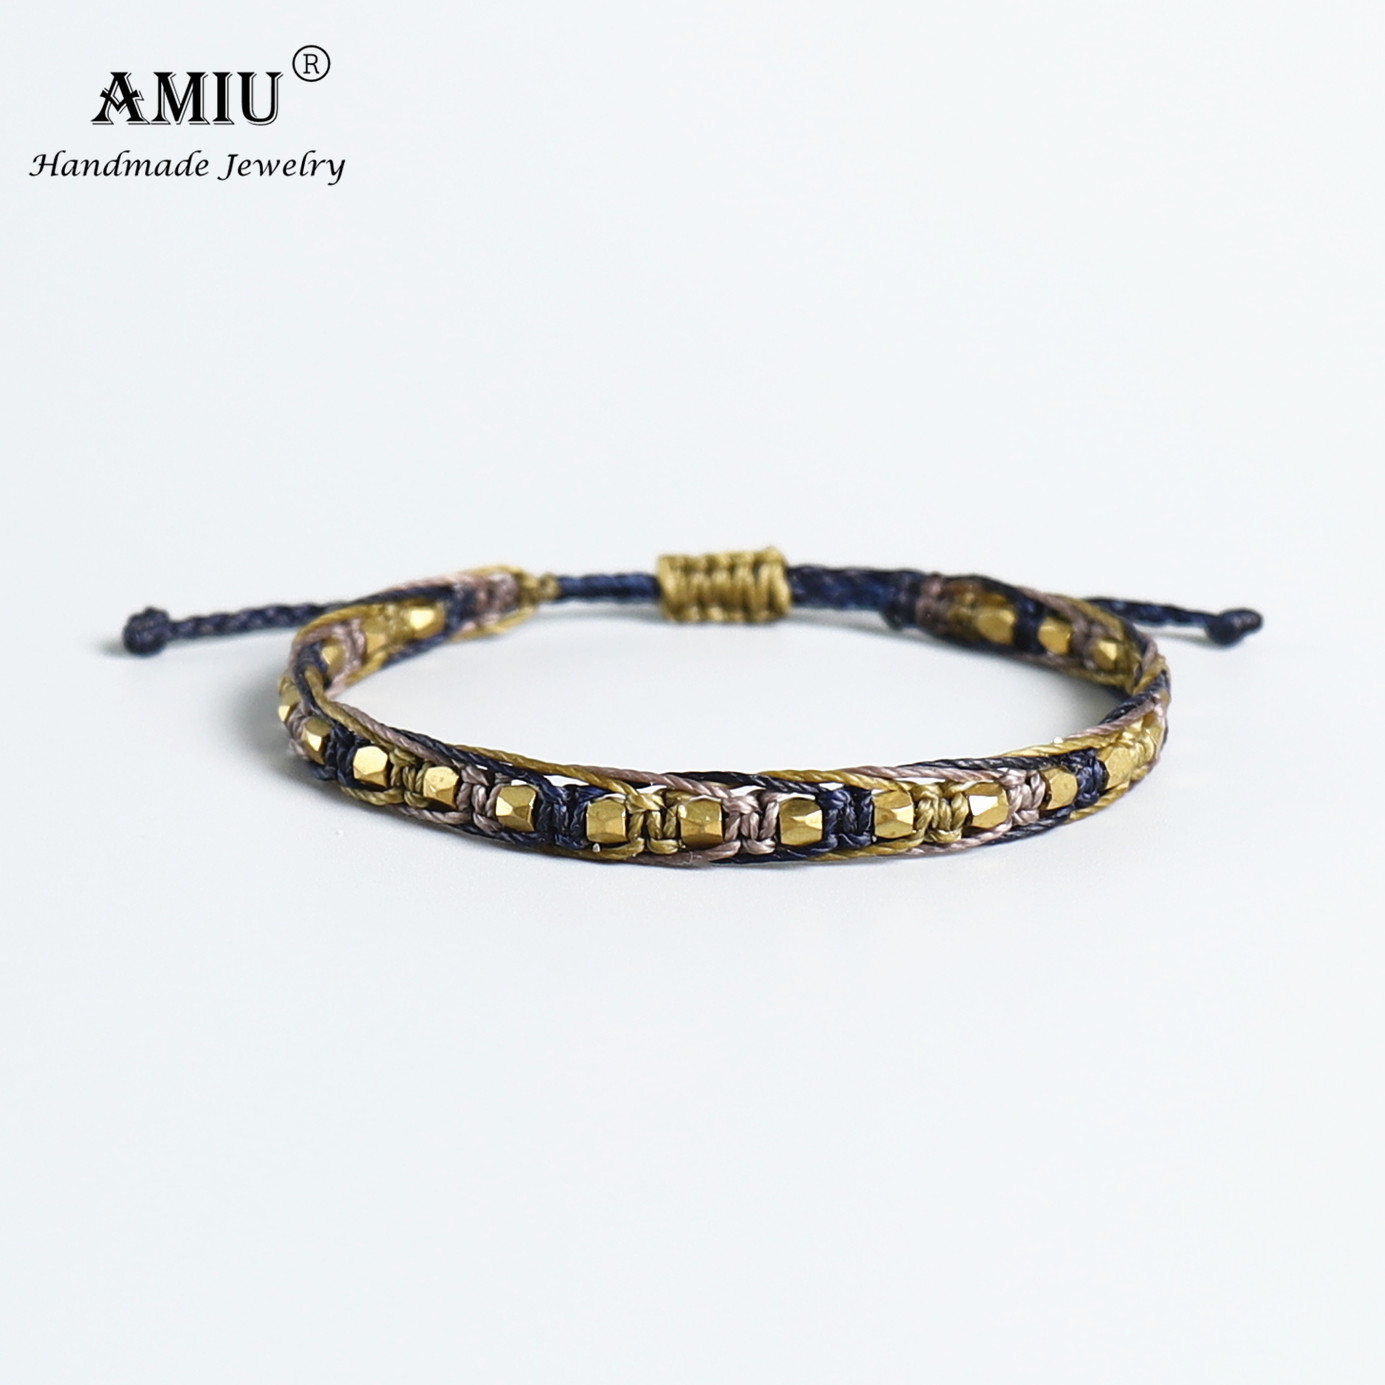 AMIU Handmade Macrame Copper Bead Waterproof Wax Thread Lucky Rope Bracelet & Bangles For Women Men Friendship Woven Bracelets